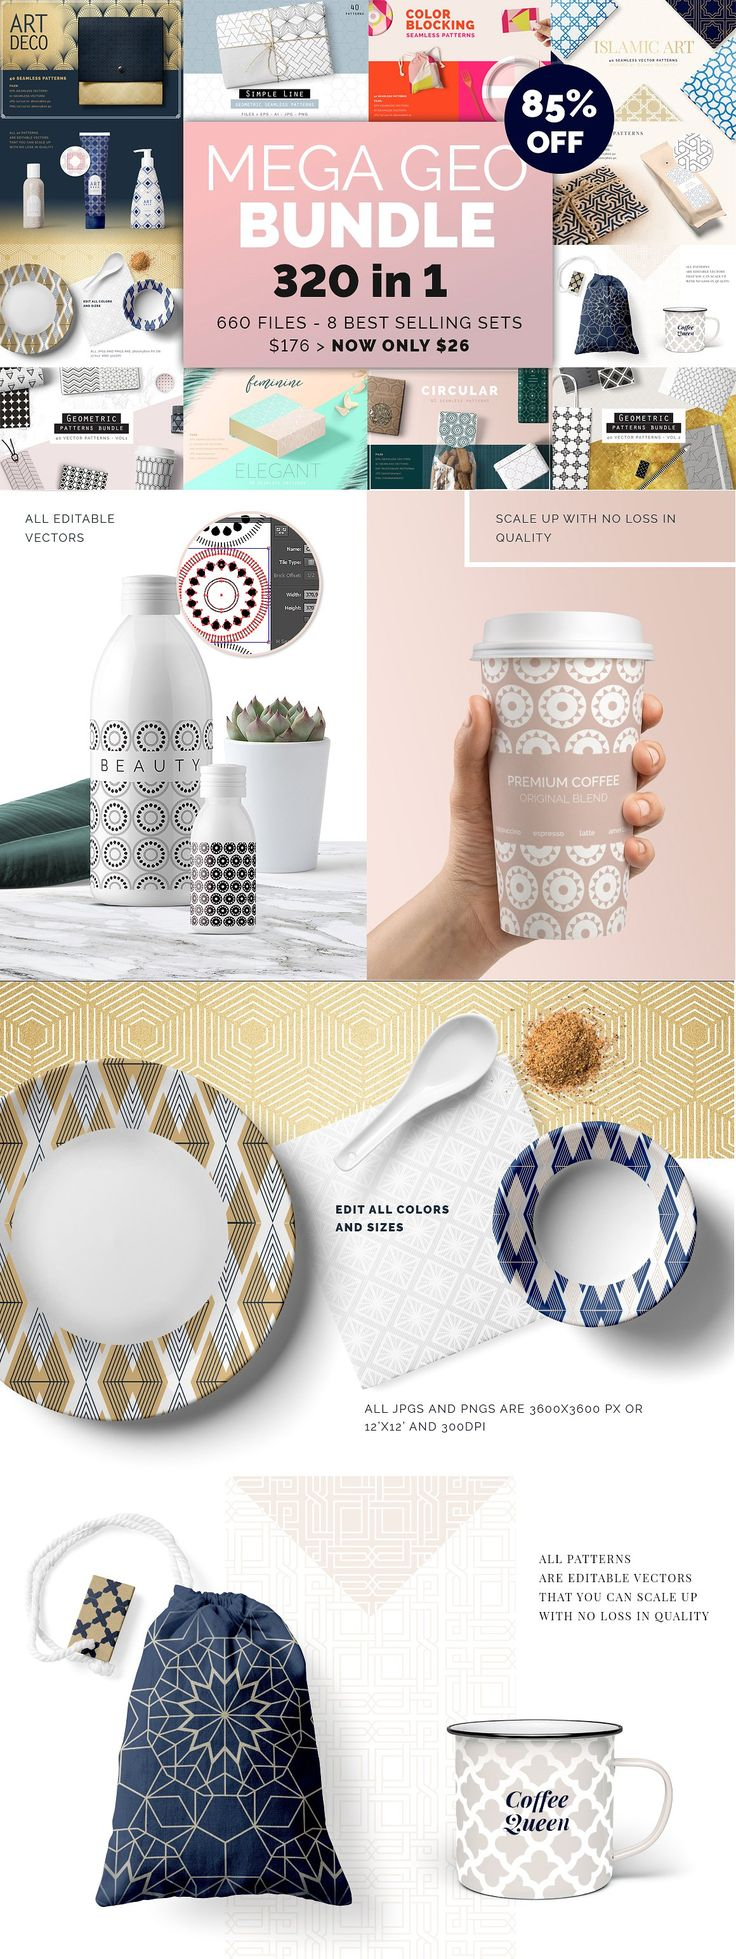 #affiliate A Mega Geometric Patterns bundle! my biggest collection bundle so far, full of Geometric pattern goodies see below the list of products included.So if you want to save $150, get this for just $26! You will be adding 8 high value pattern sets (containing 40 unique patterns each) to your collection that will make your projects easier and faster.These products can be ideal as backgrounds for branding projects, packaging, fashion apparel, posters, leaflets, wallpapers etc.